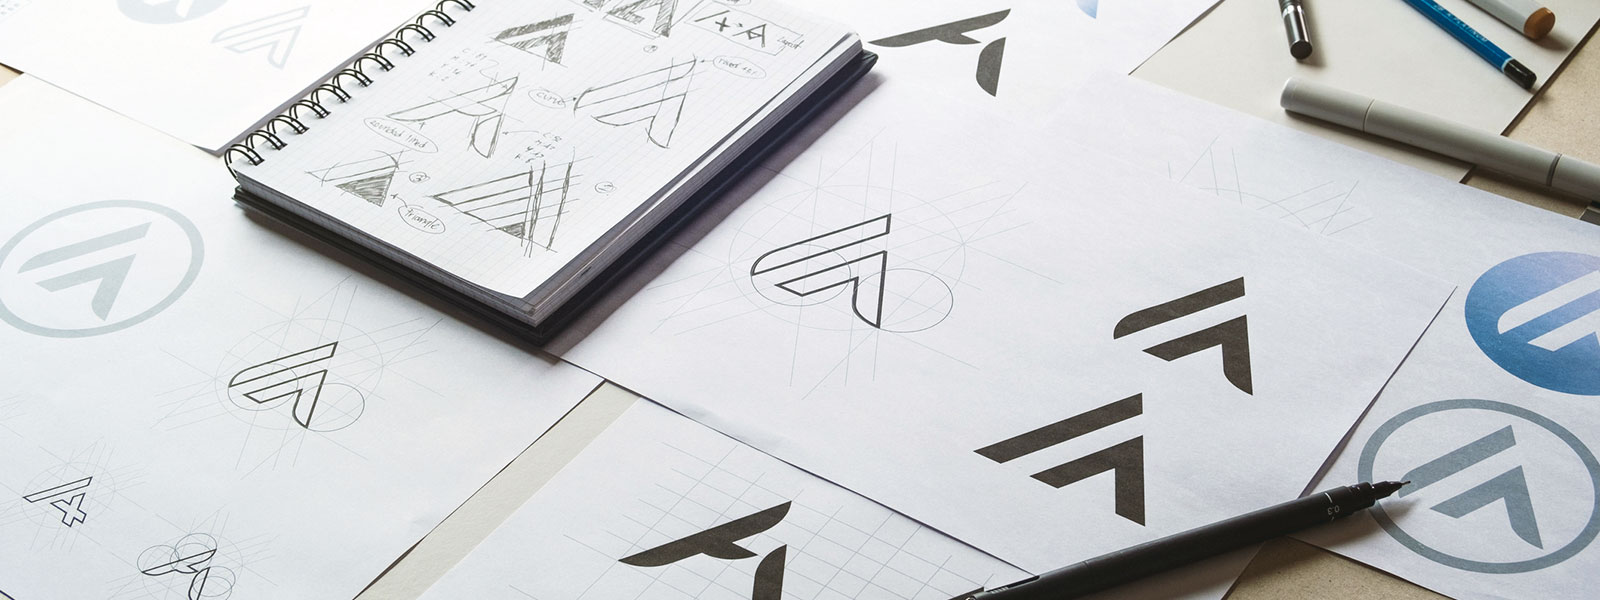 What makes a logo great?